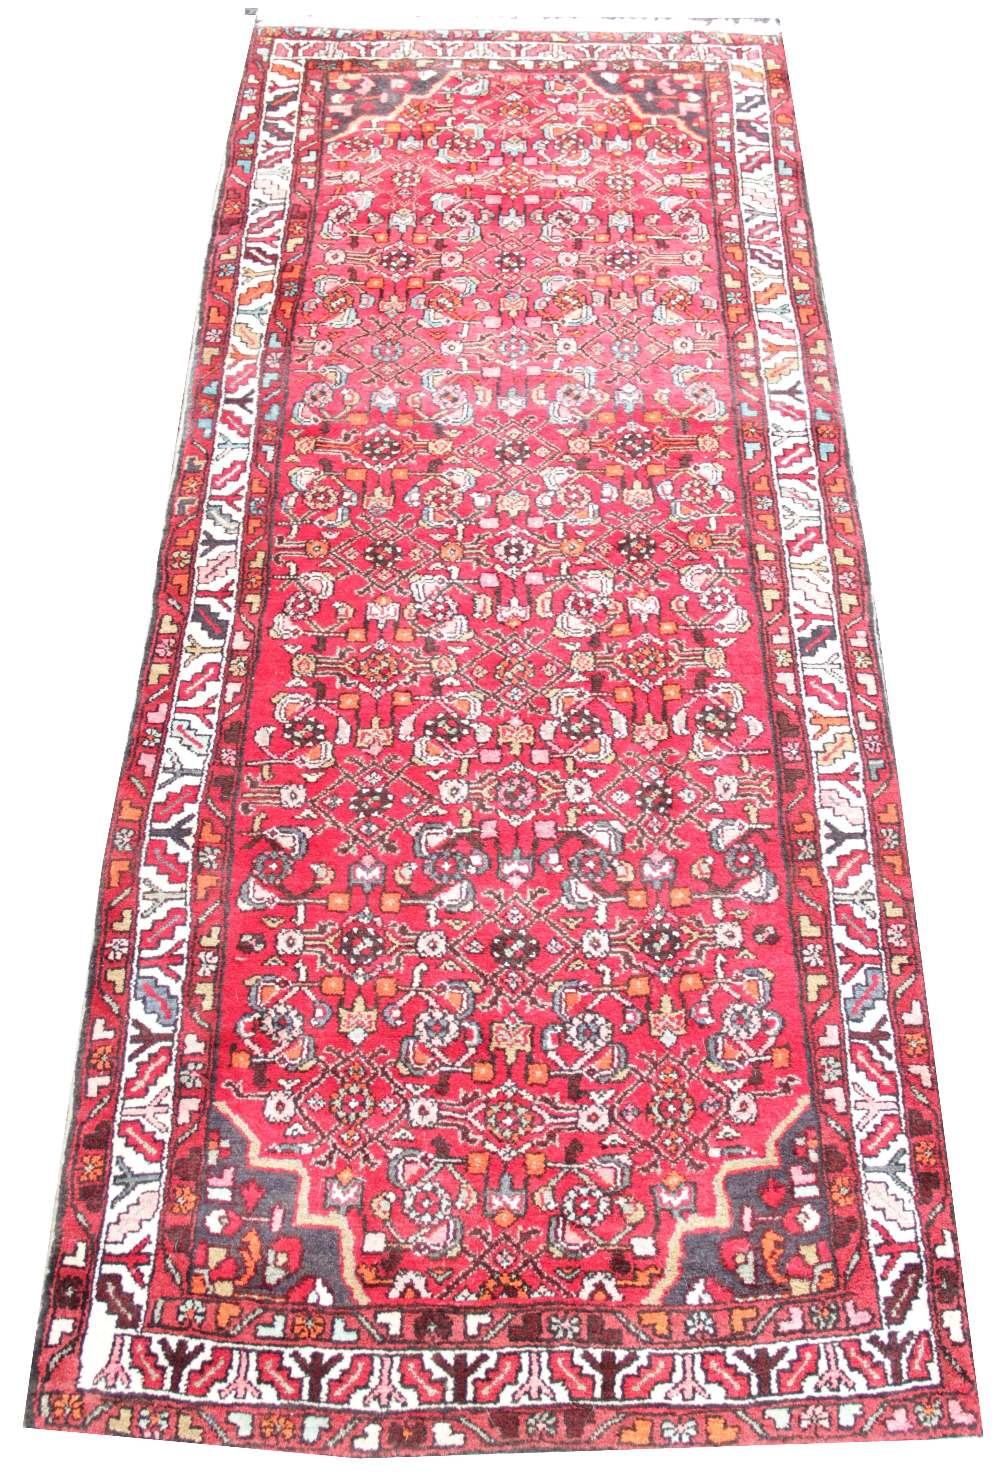 A hand knotted Persian wool runner, the central panel with a trailing geometric pattern upon a